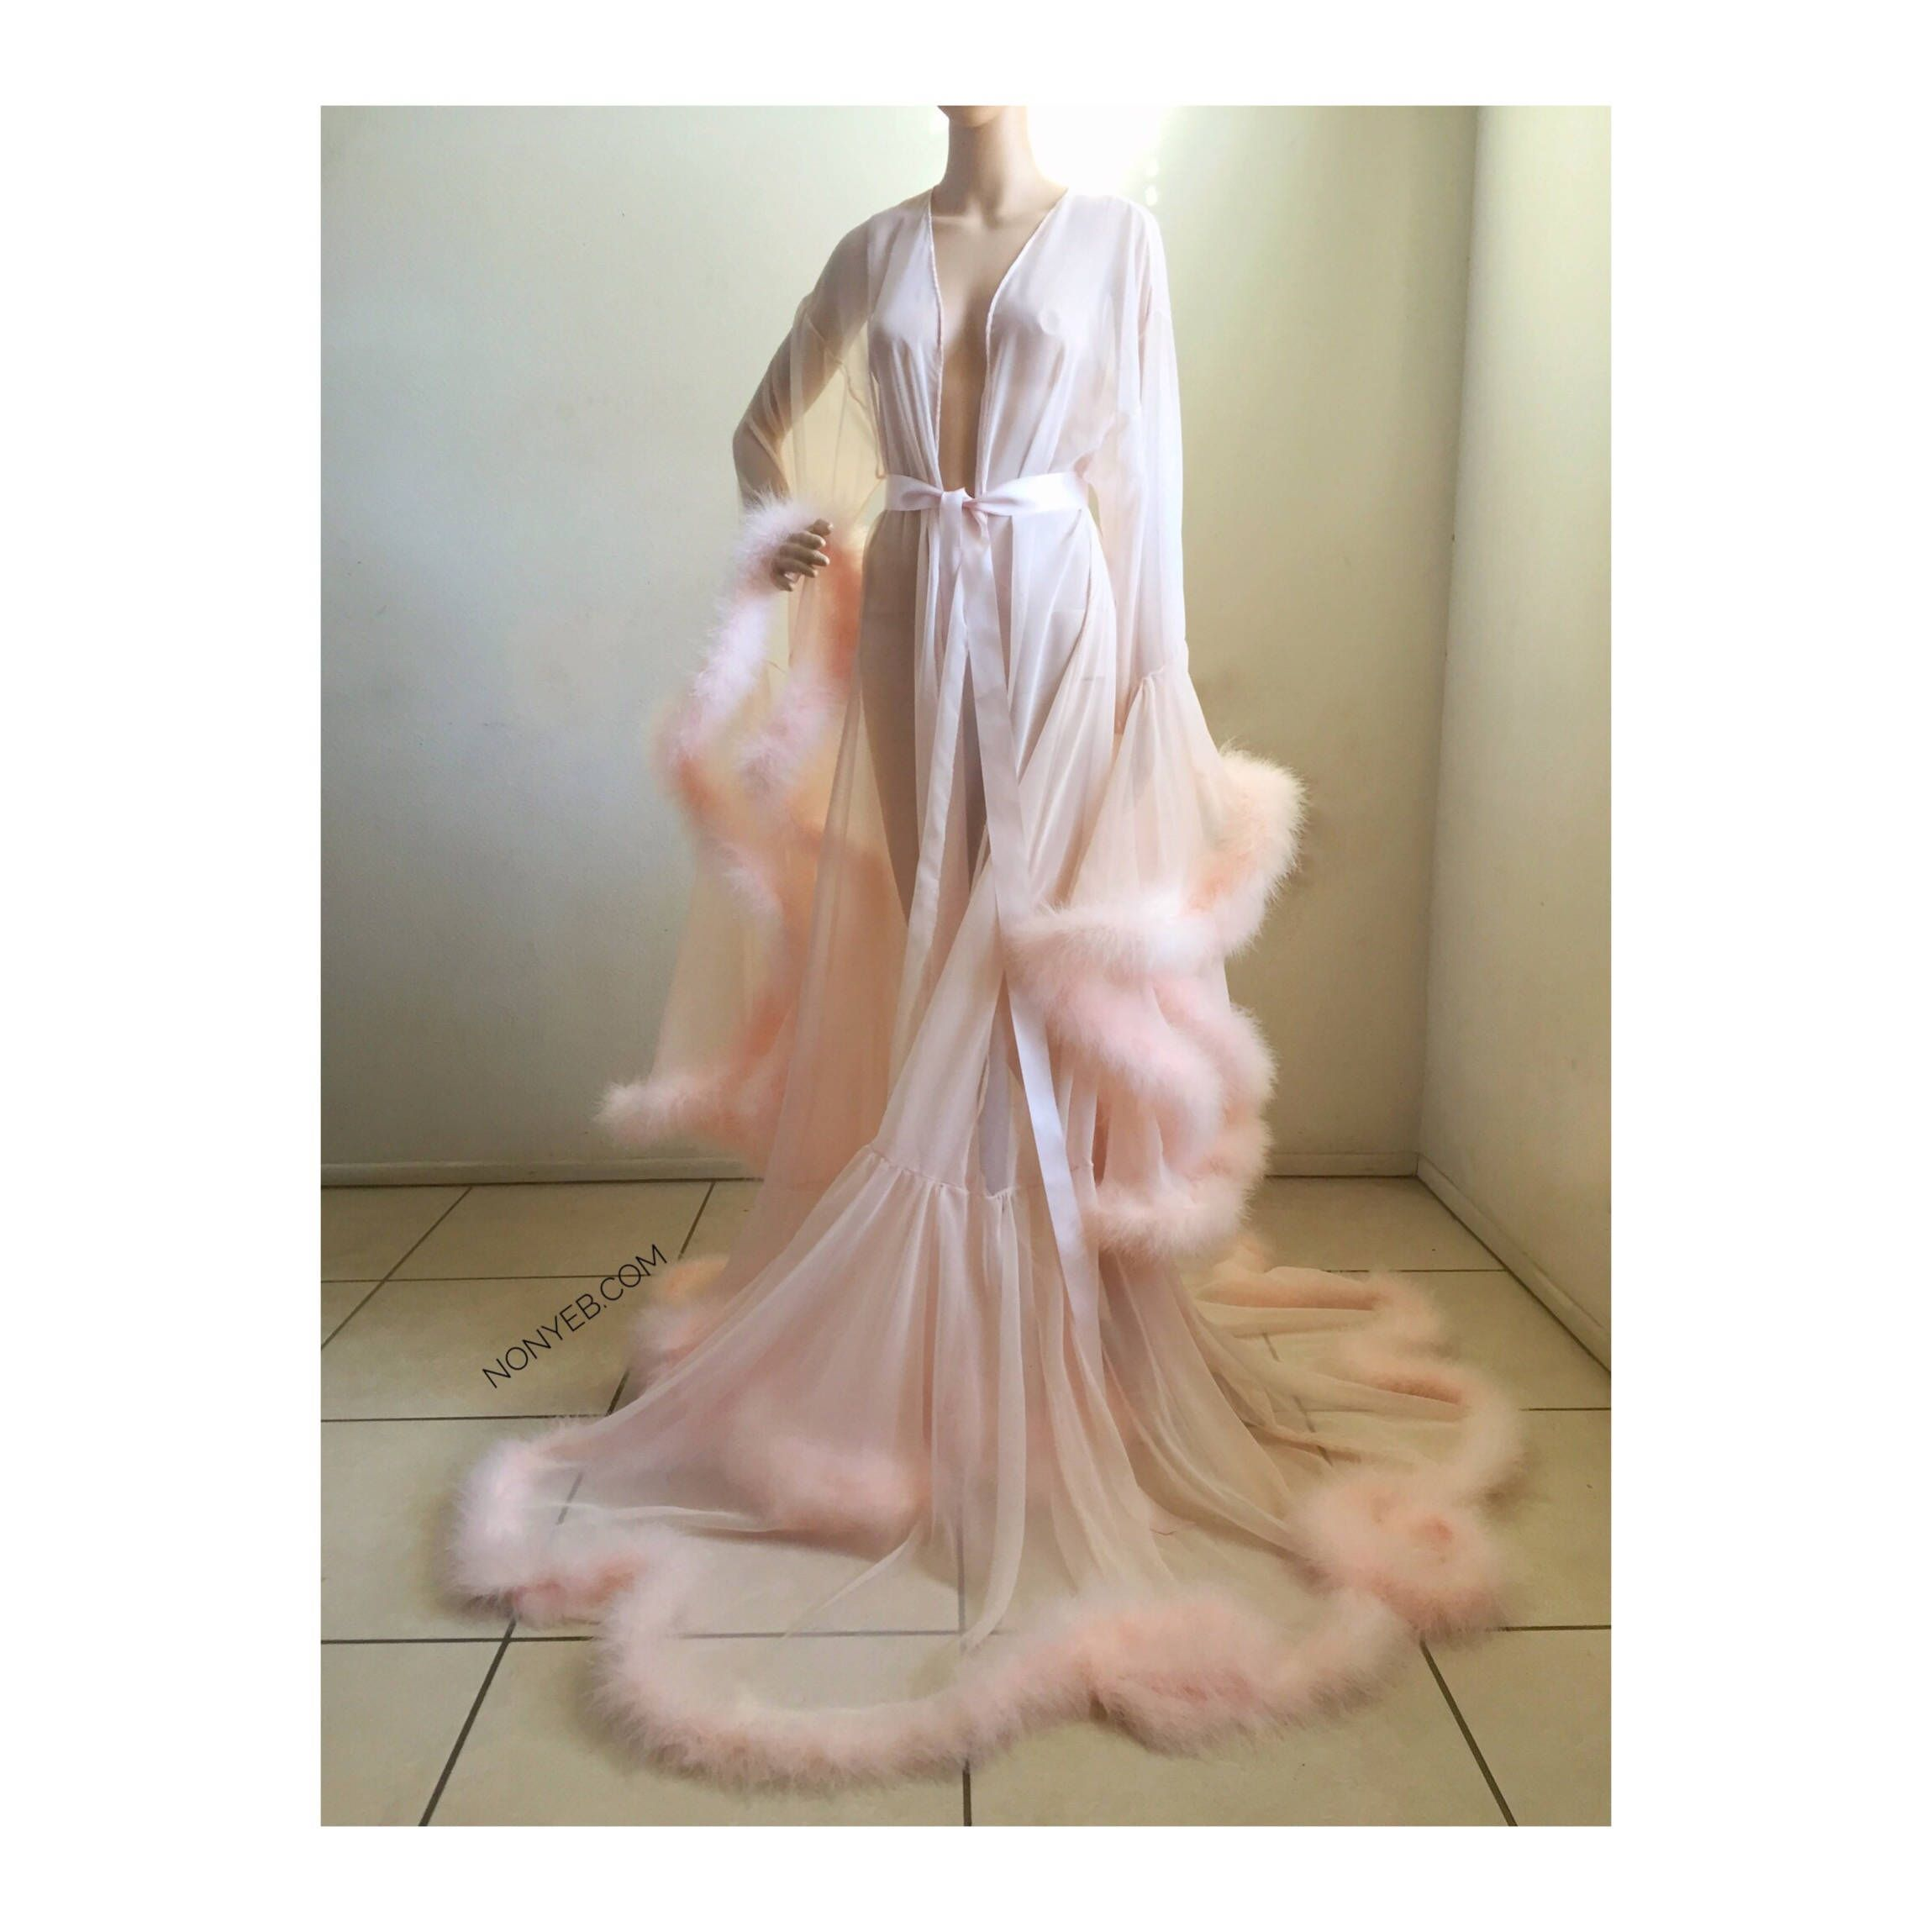 2f2ace1868 Luxury Sheer Fur Robe Lingerie. Feather trim robe with satin ties. High  quality lingerie